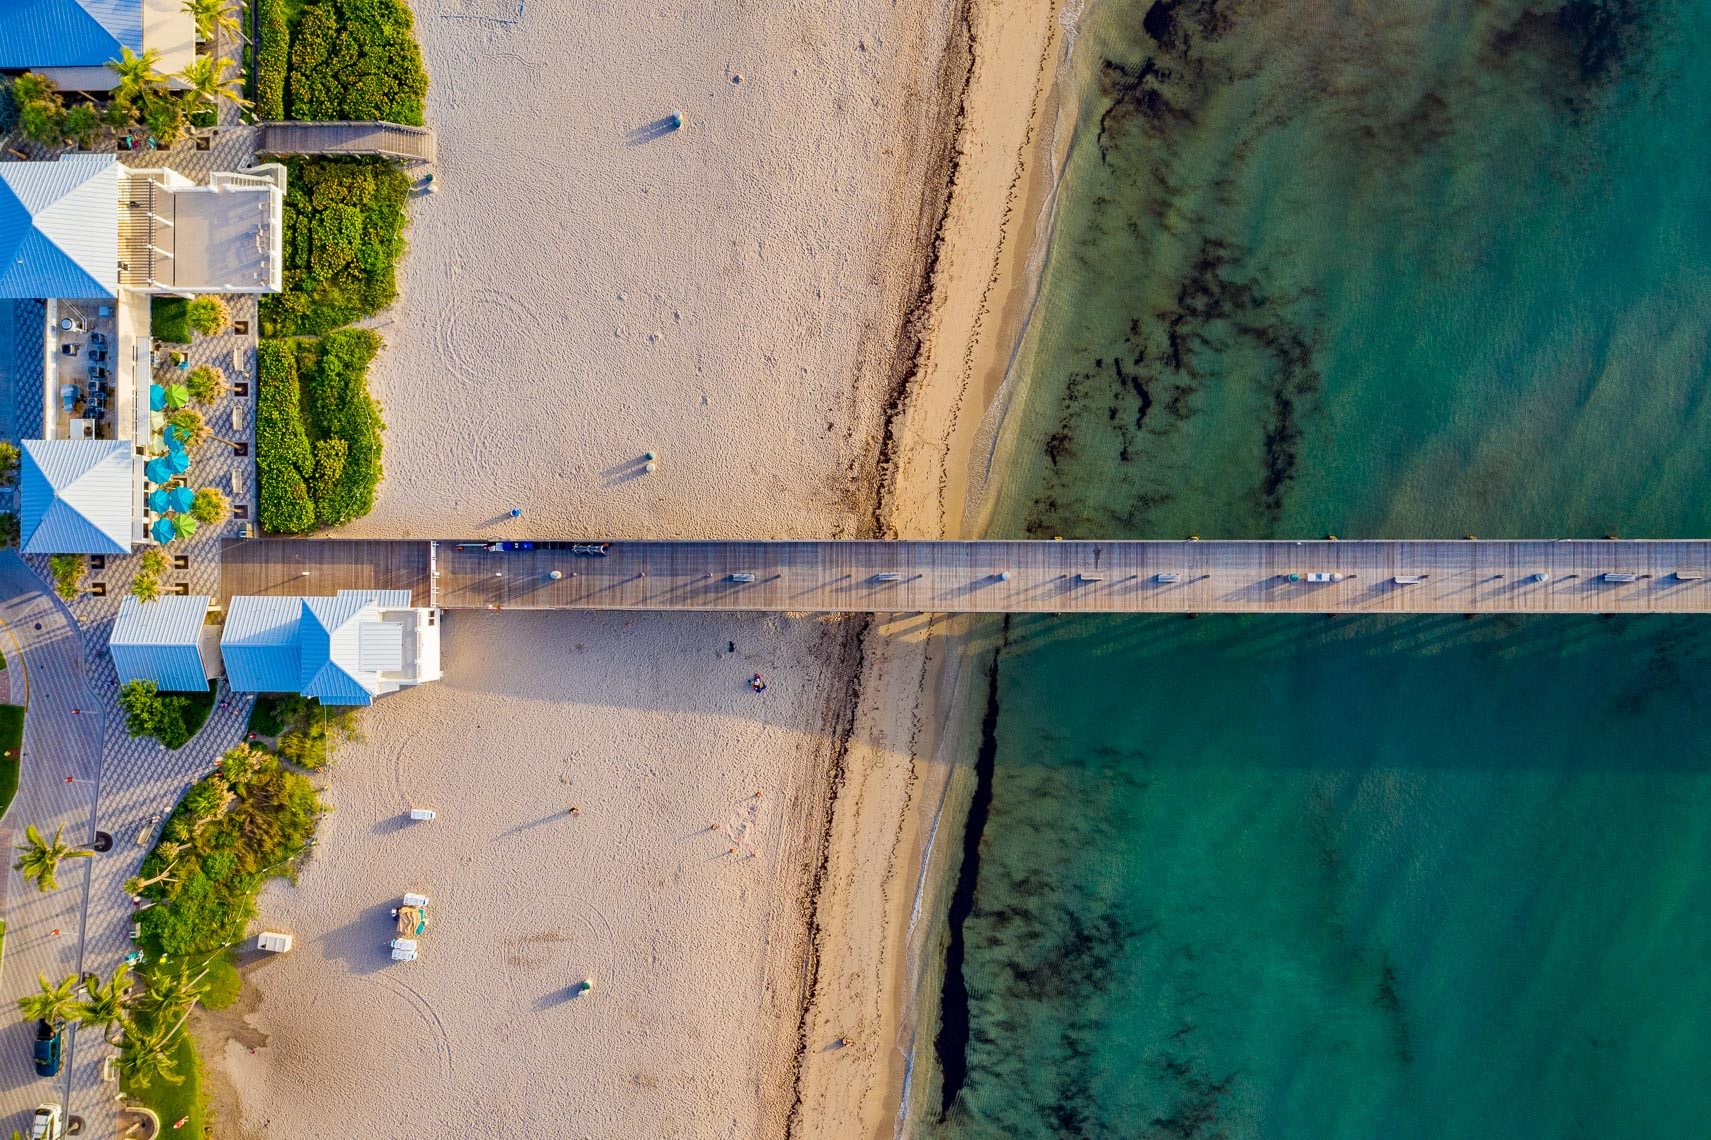 The Deerfield Beach International Fishing Pier seen from a drone